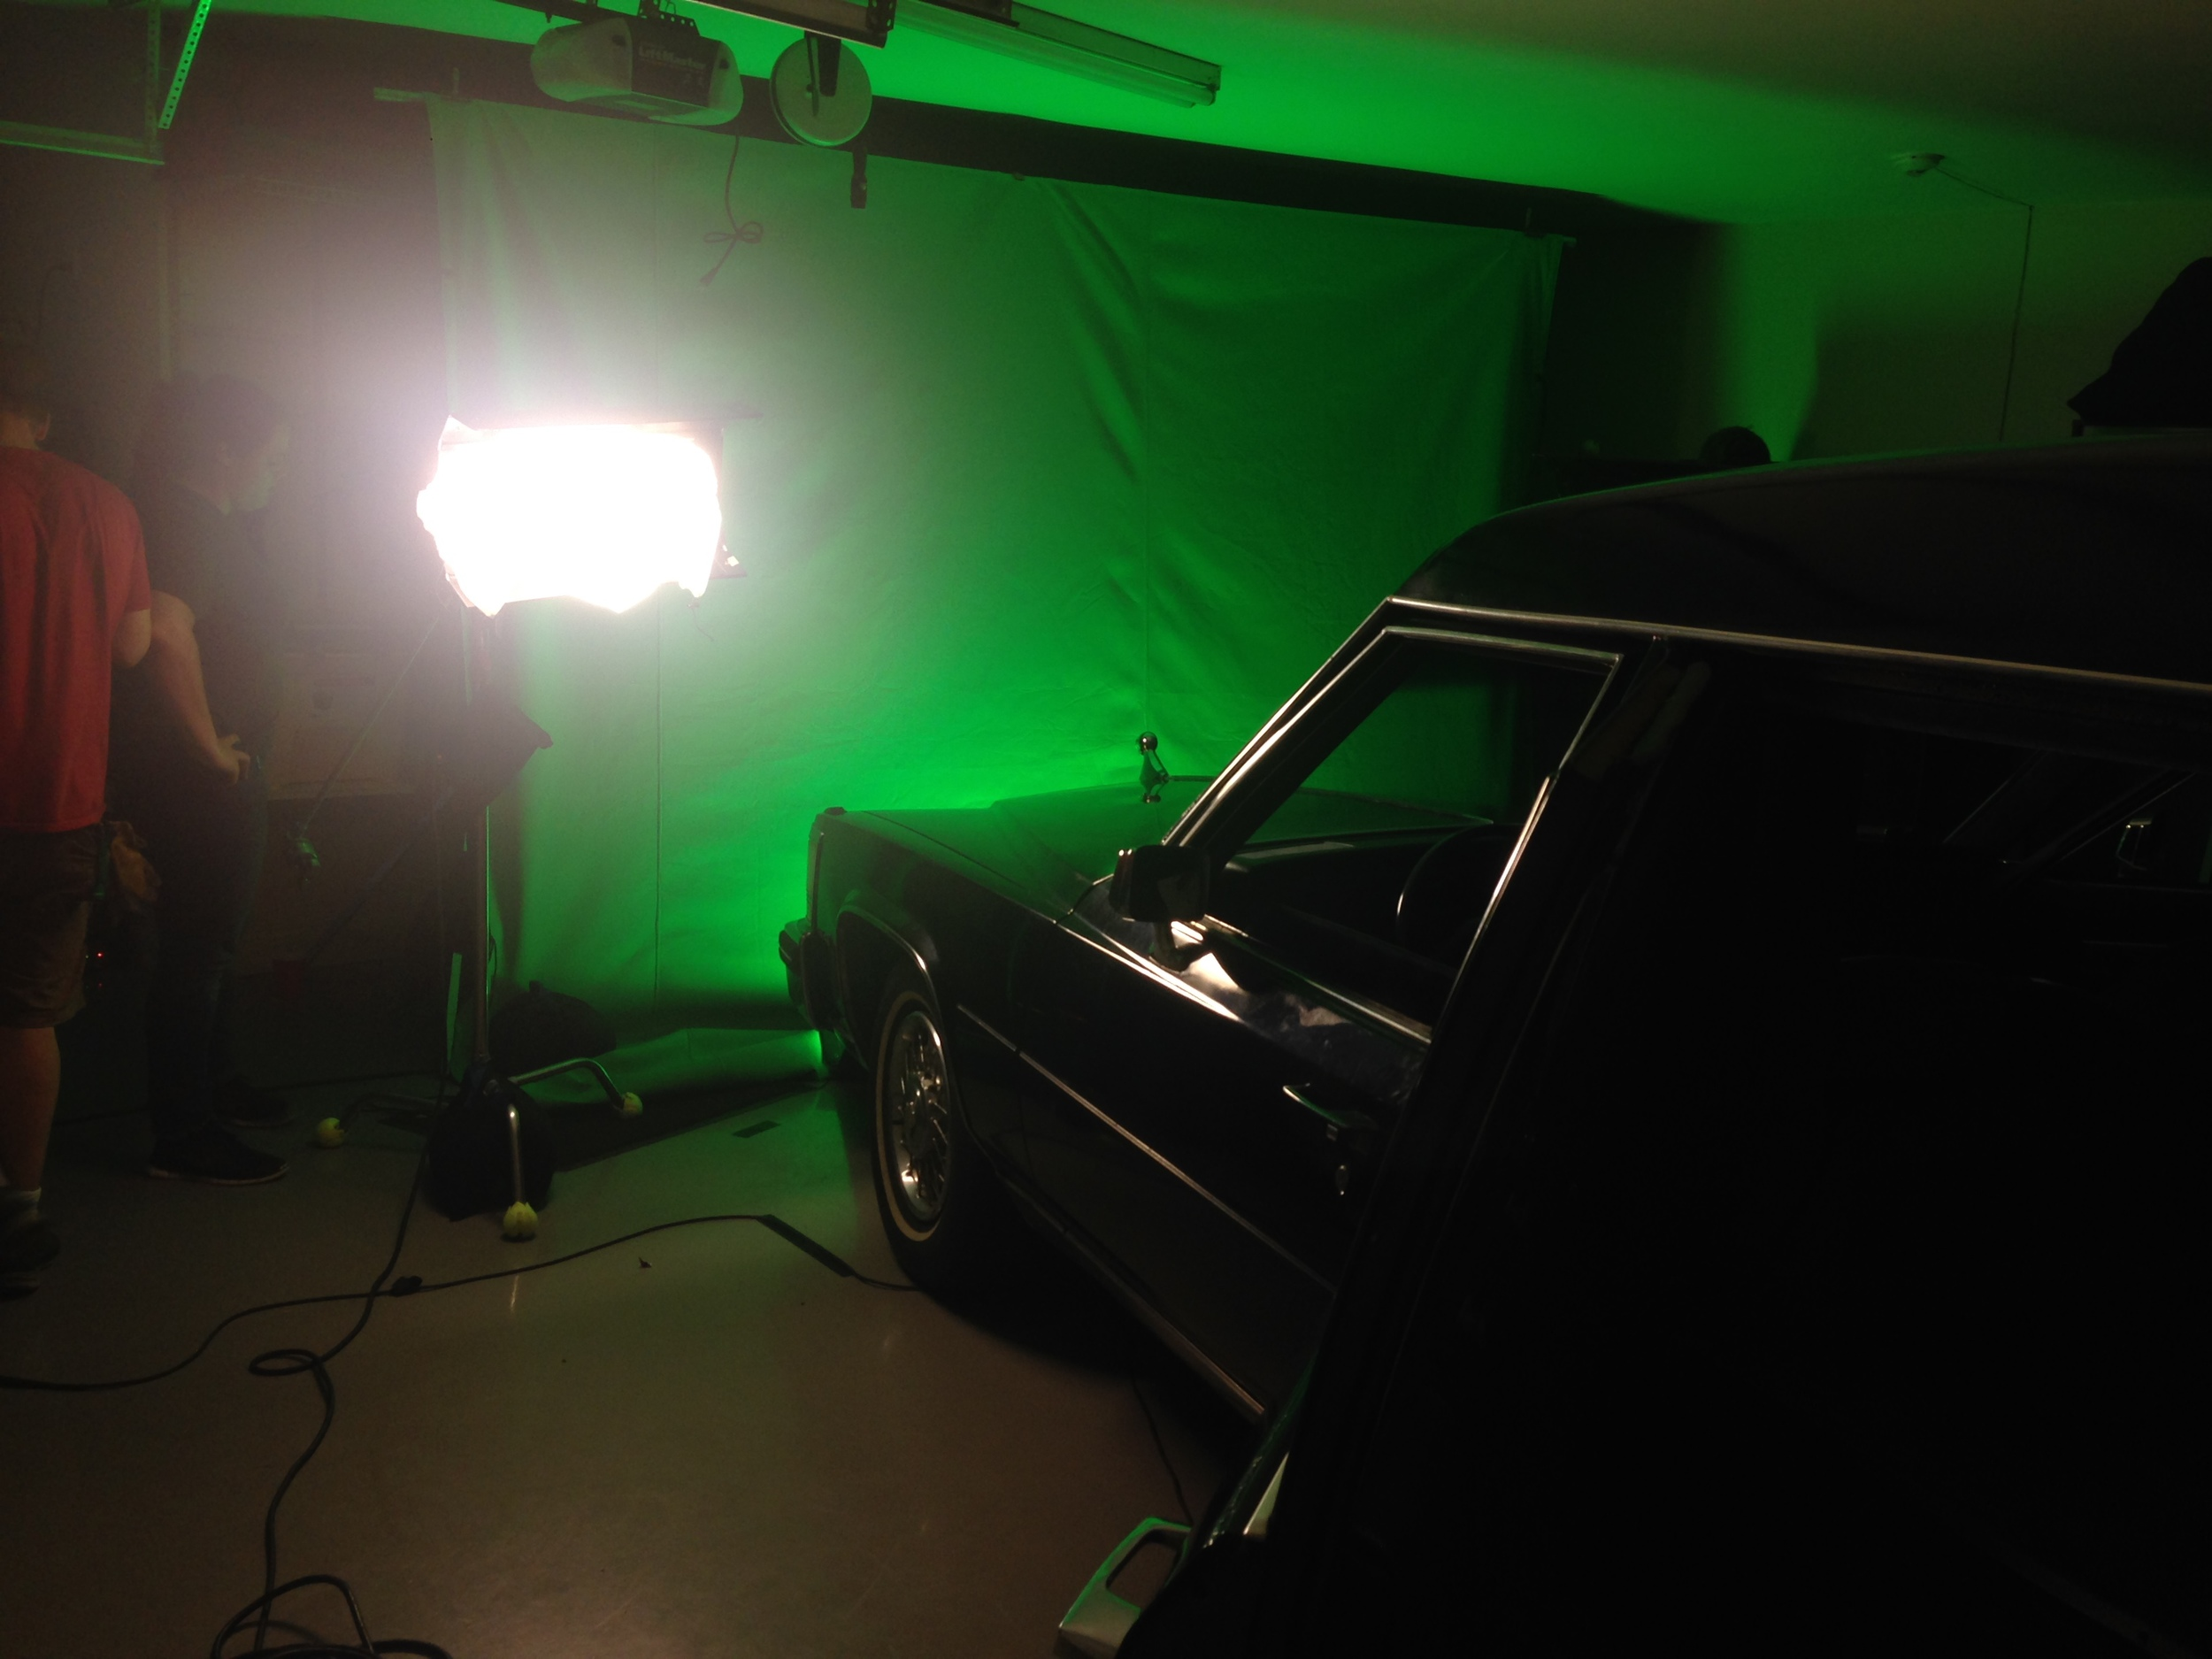 Green screen shots in Craig's garage. Hot lights + close quarter = a very sweaty cast and crew.